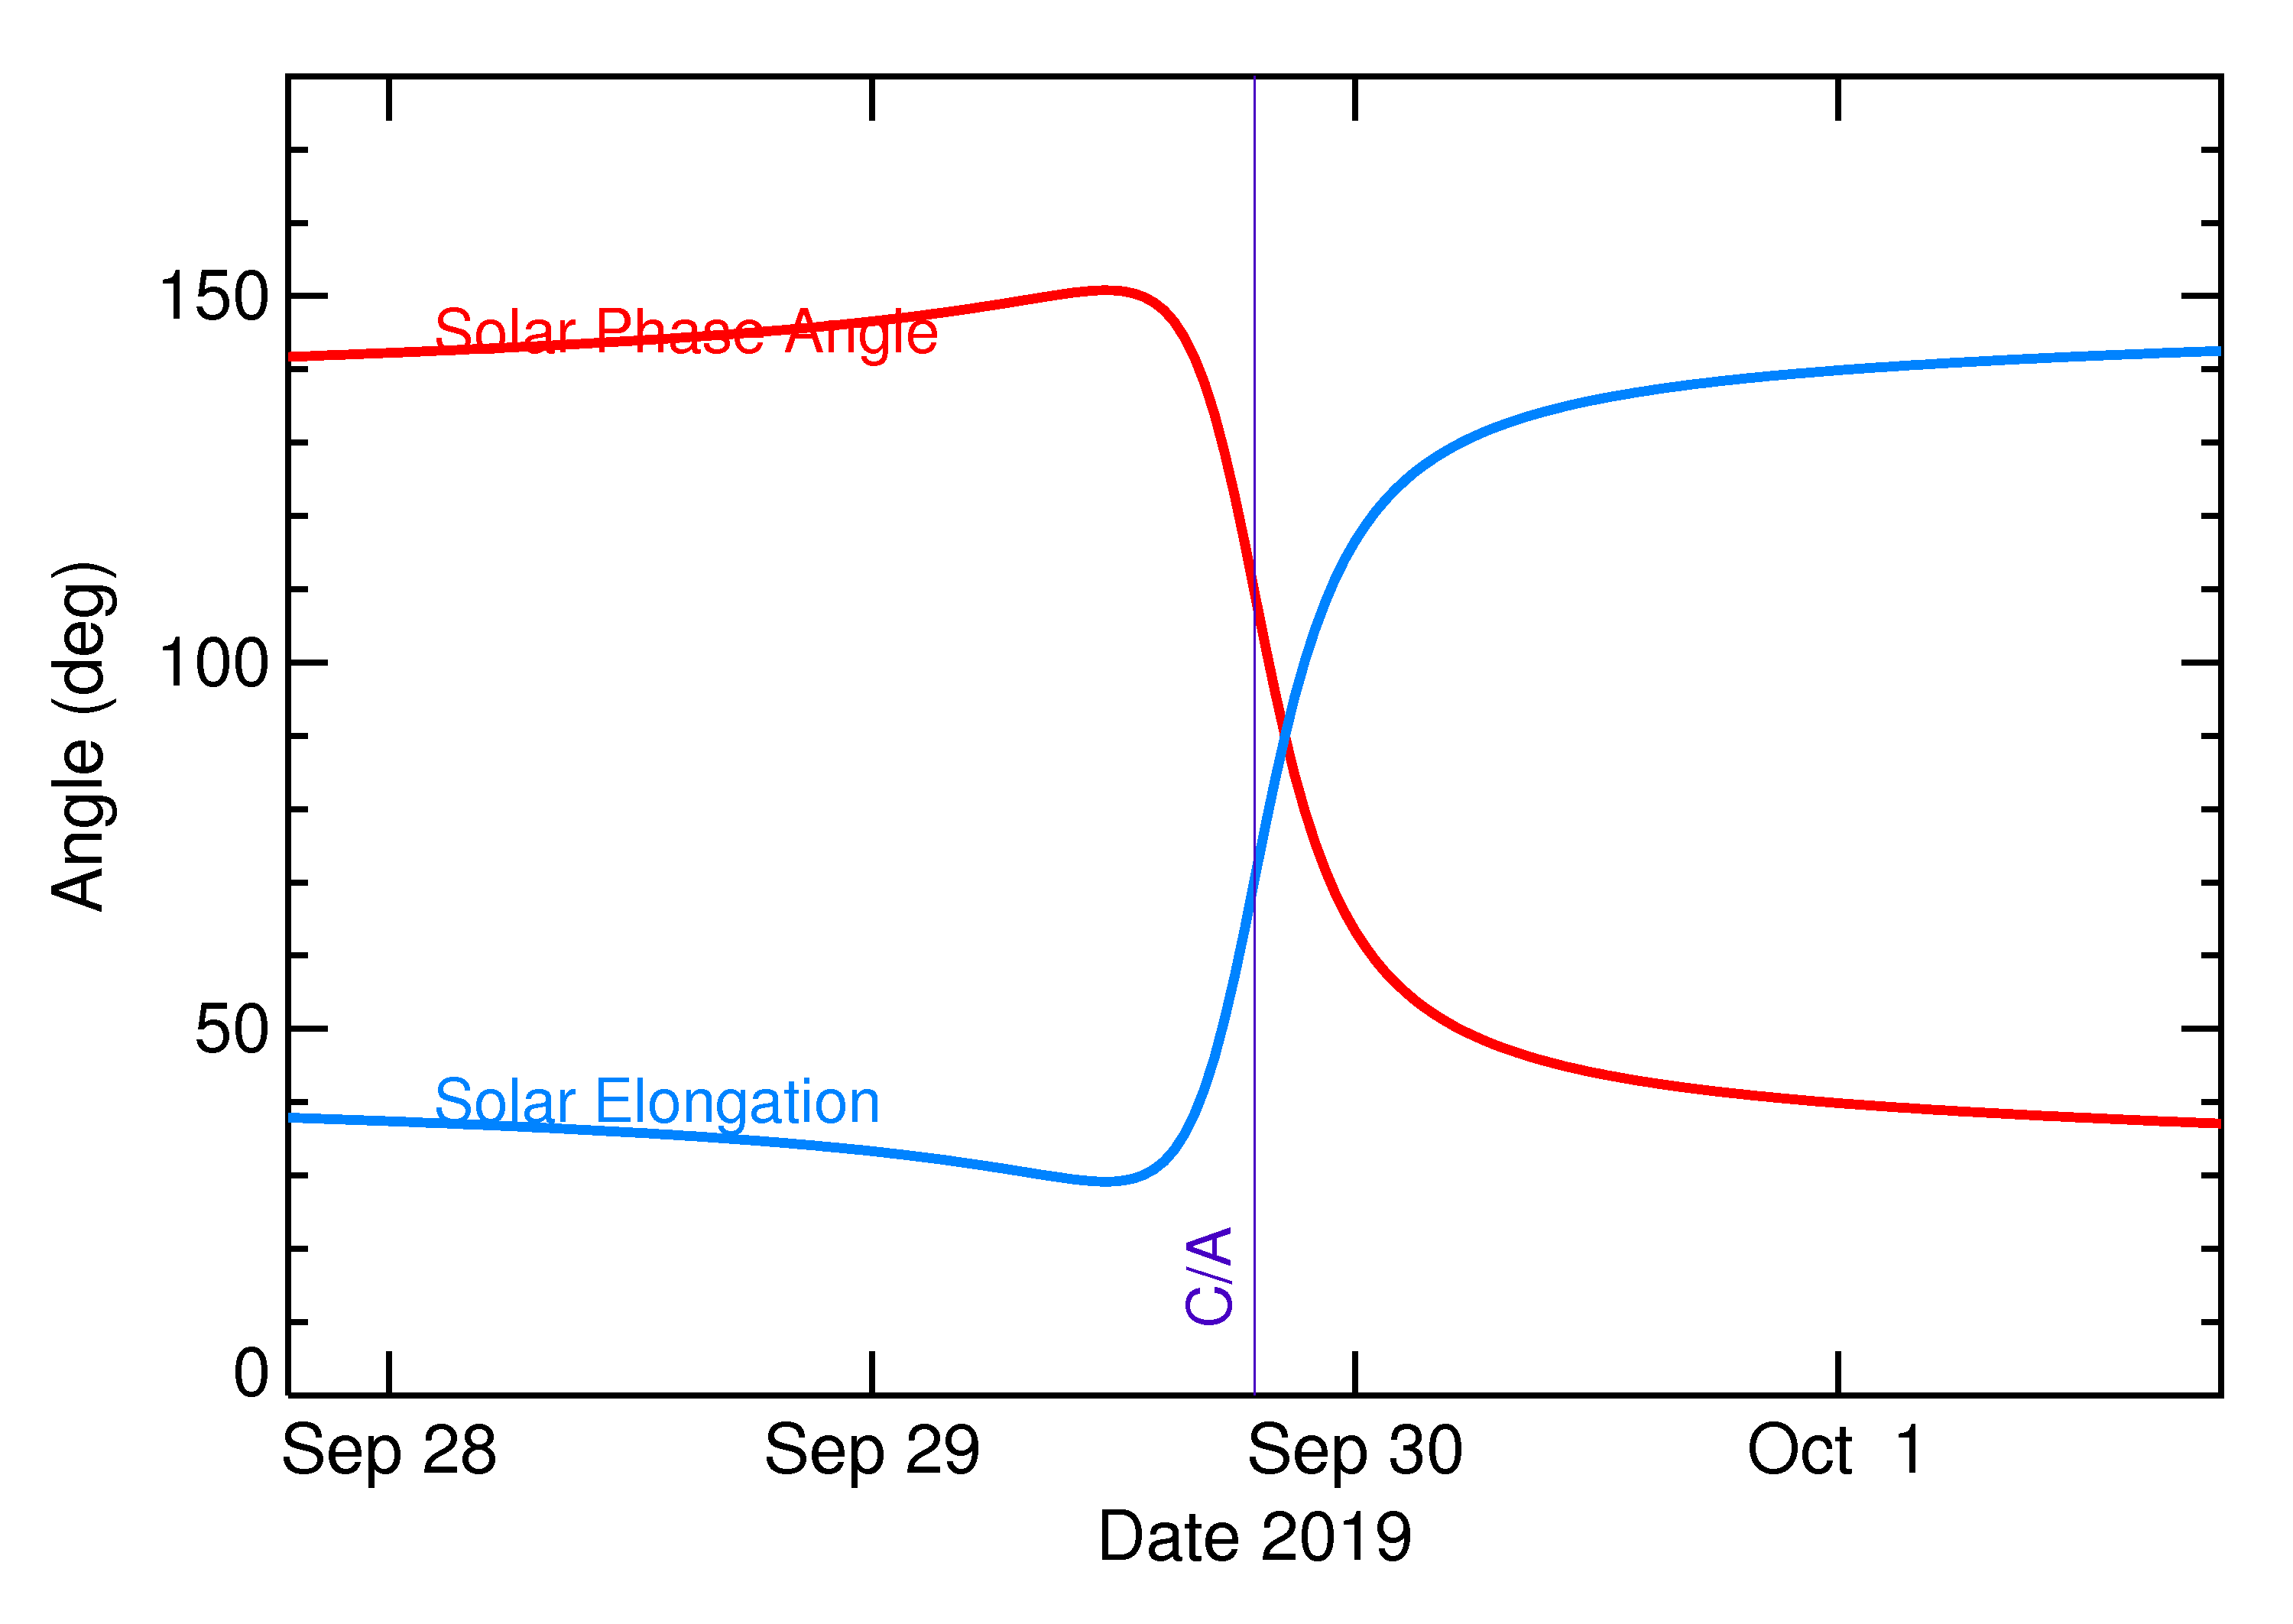 Solar Elongation and Solar Phase Angle of 2019 TD in the days around closest approach